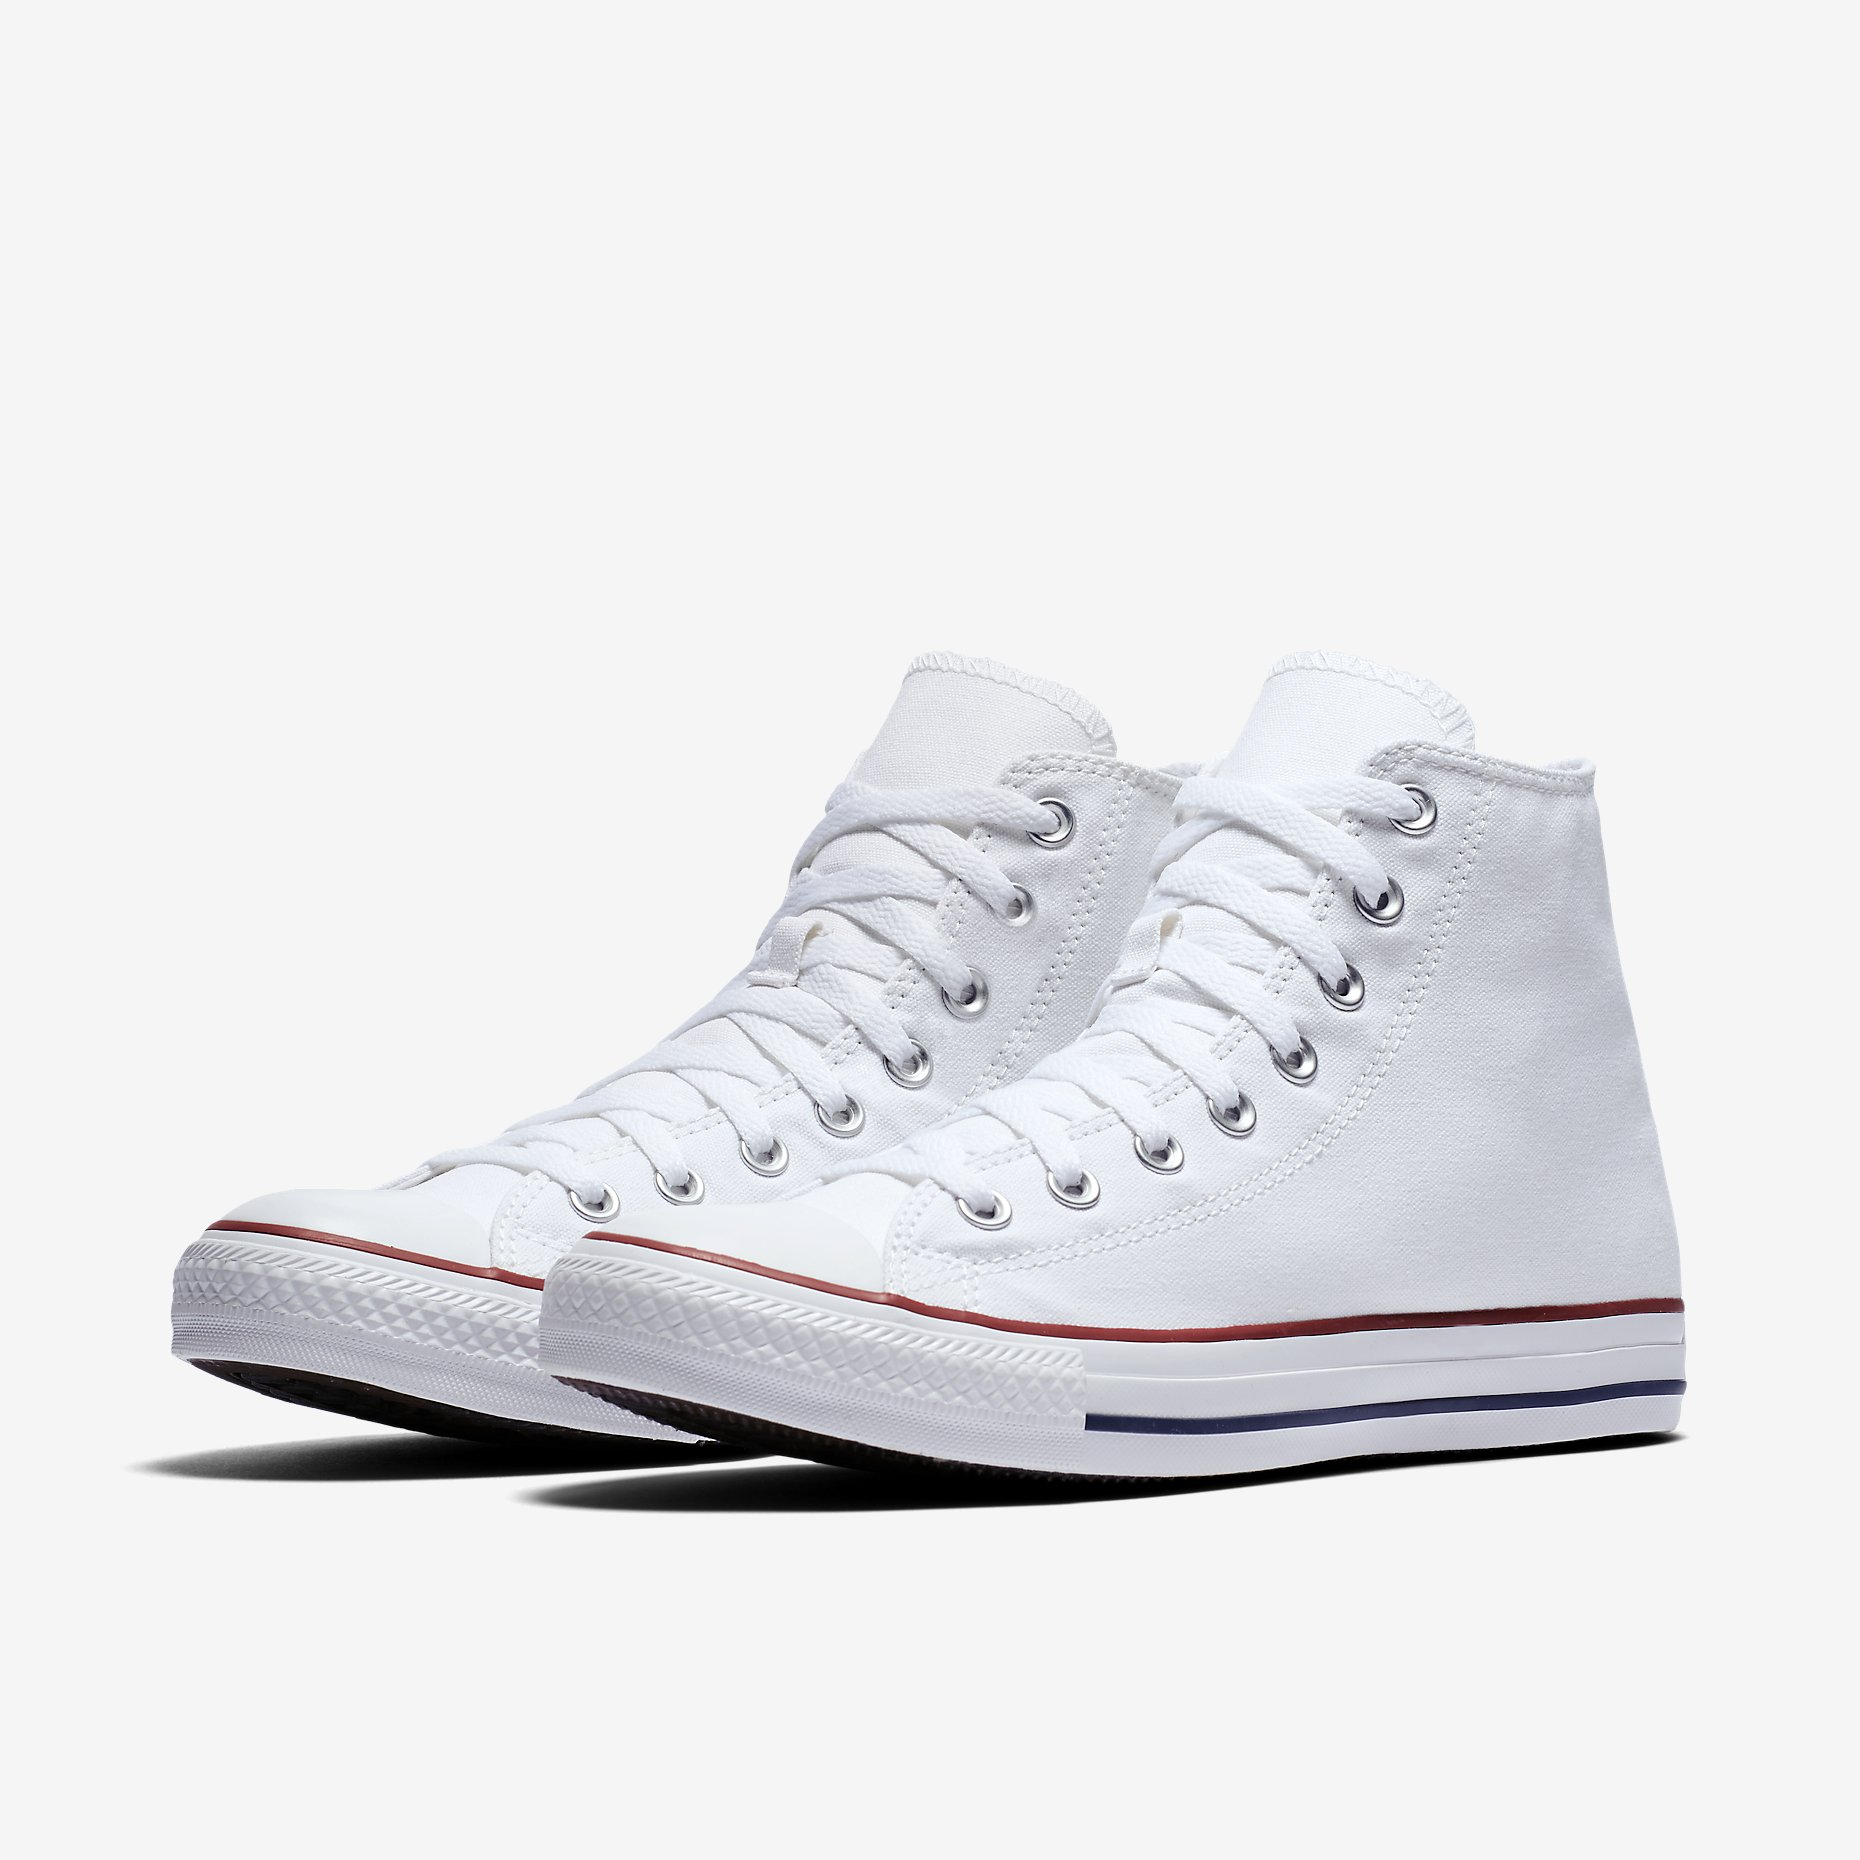 792ebe146666 Converse Chuck Taylor All Star High Top White - Spinners Sports